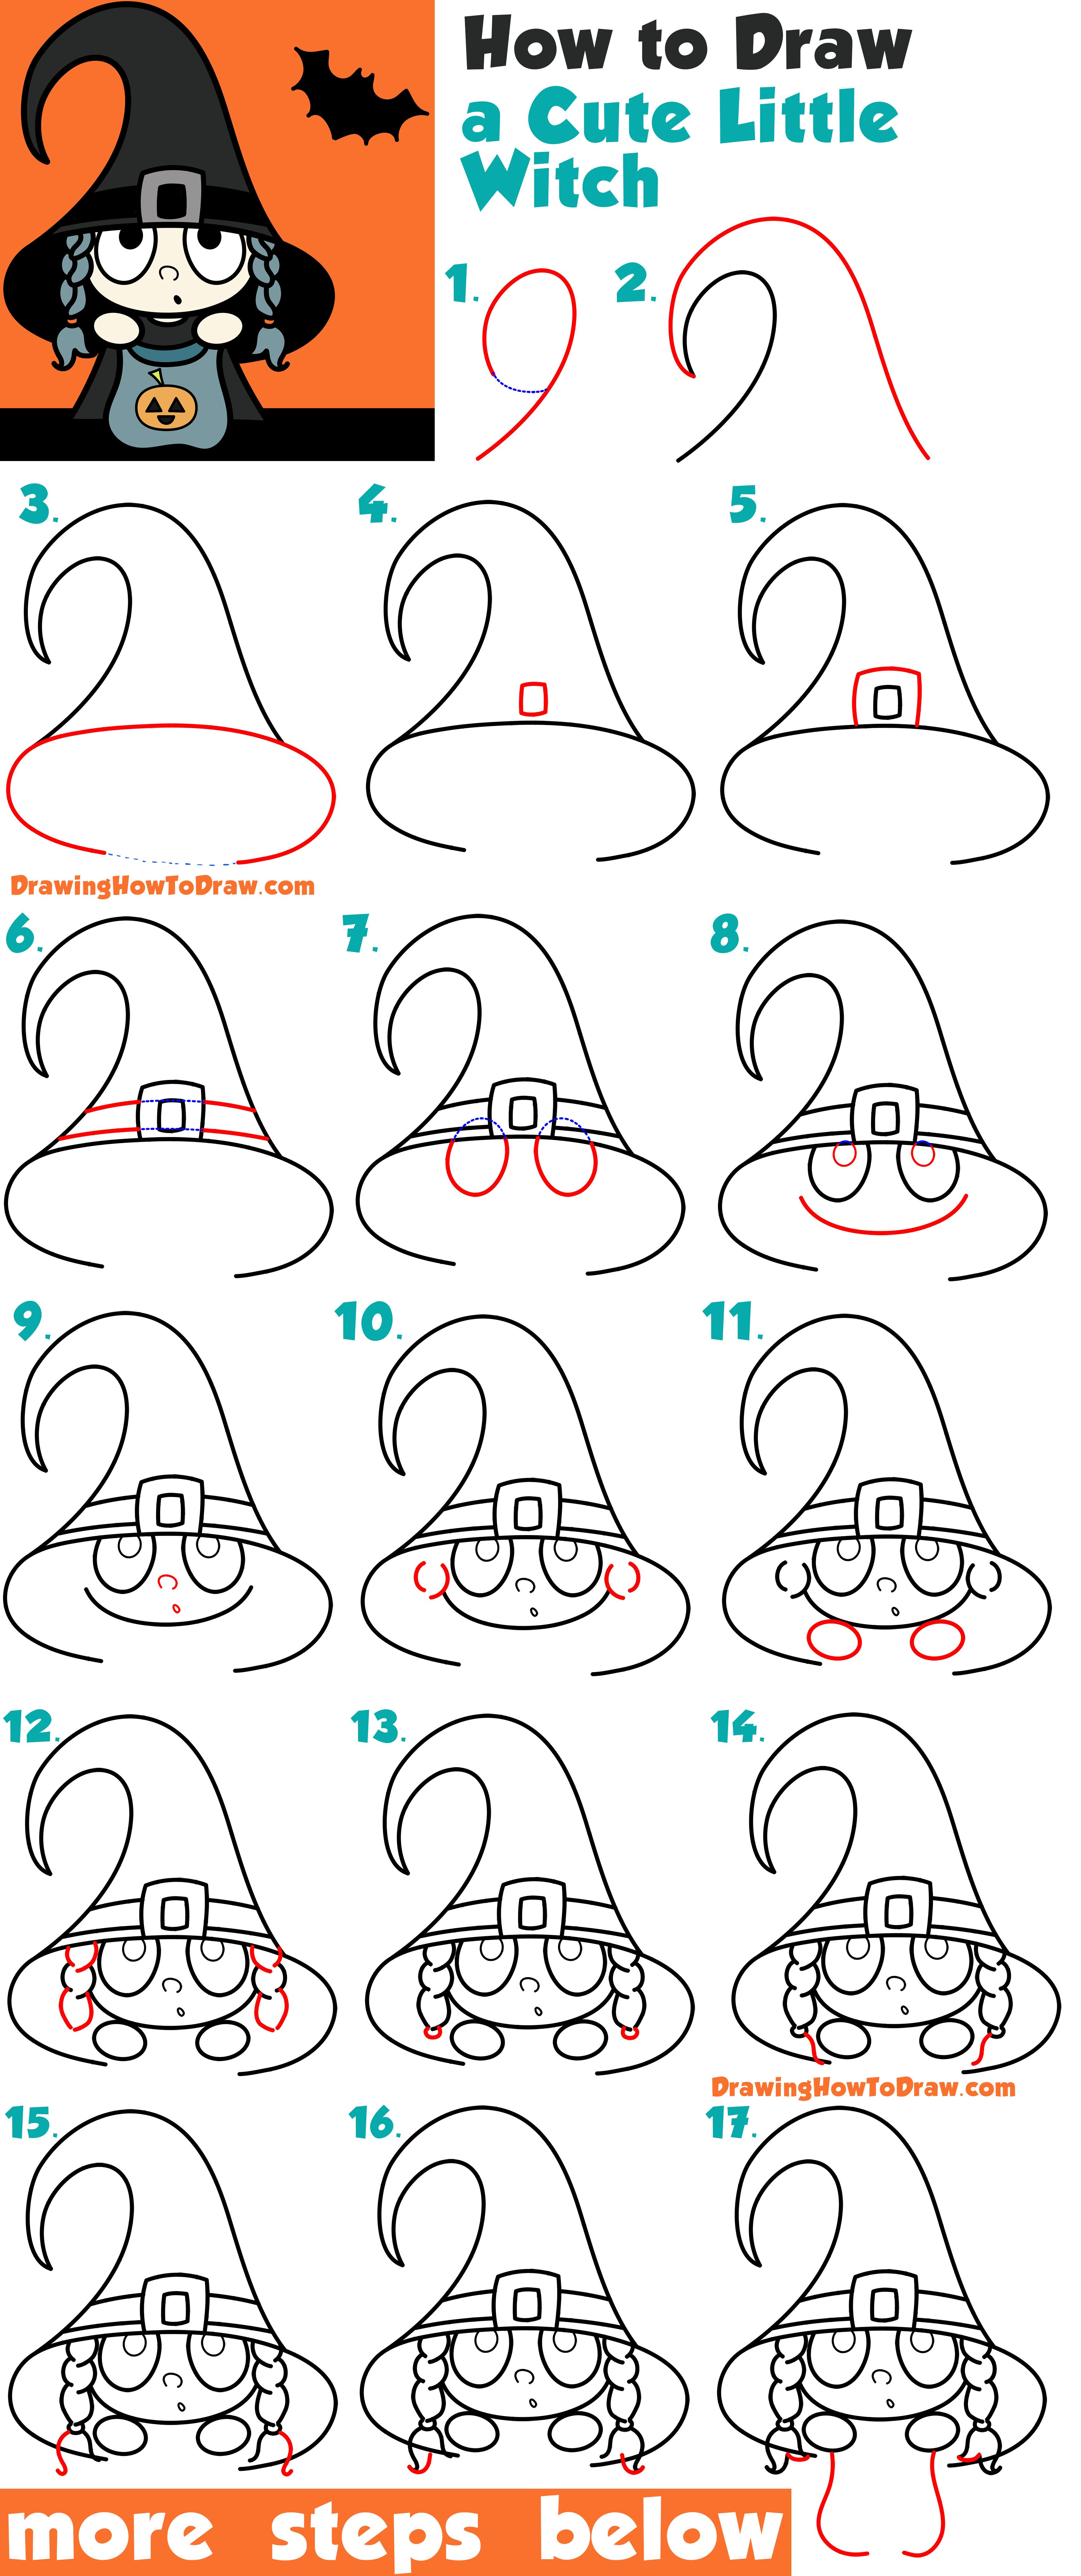 How to Draw a Cute Cartoon Kid Dressed Up as a Witch for